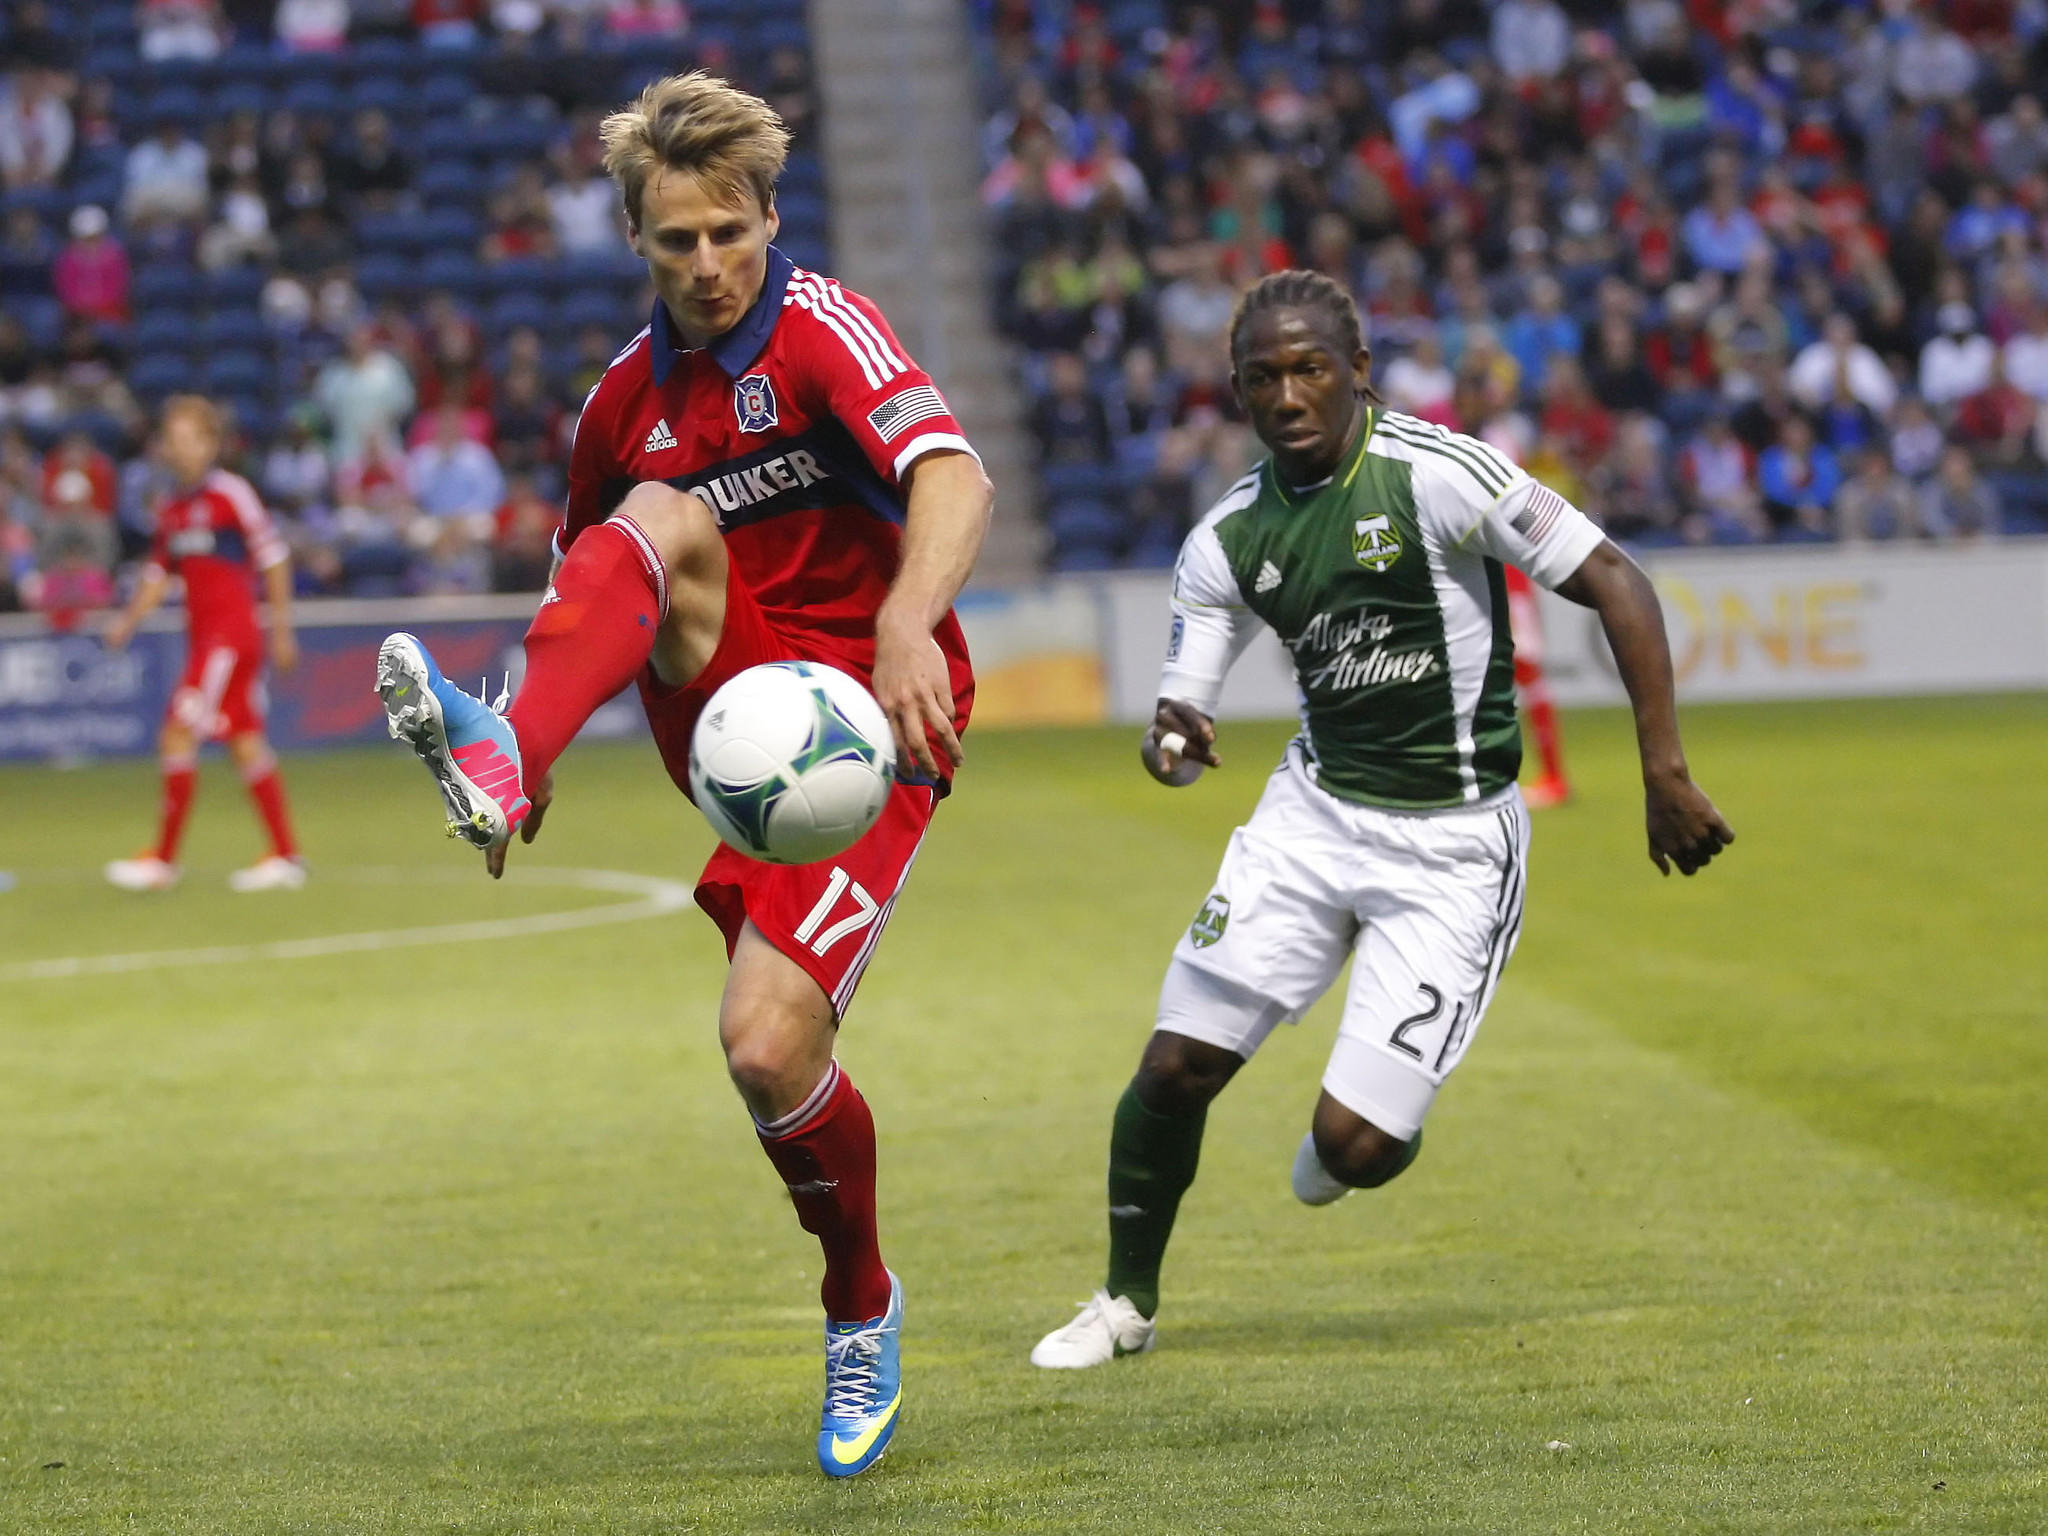 Chicago Fire forward Chris Rolfe (17) is pursued by Portland Timbers midfielder Diego Chara (21) during the first half at Toyota Park.